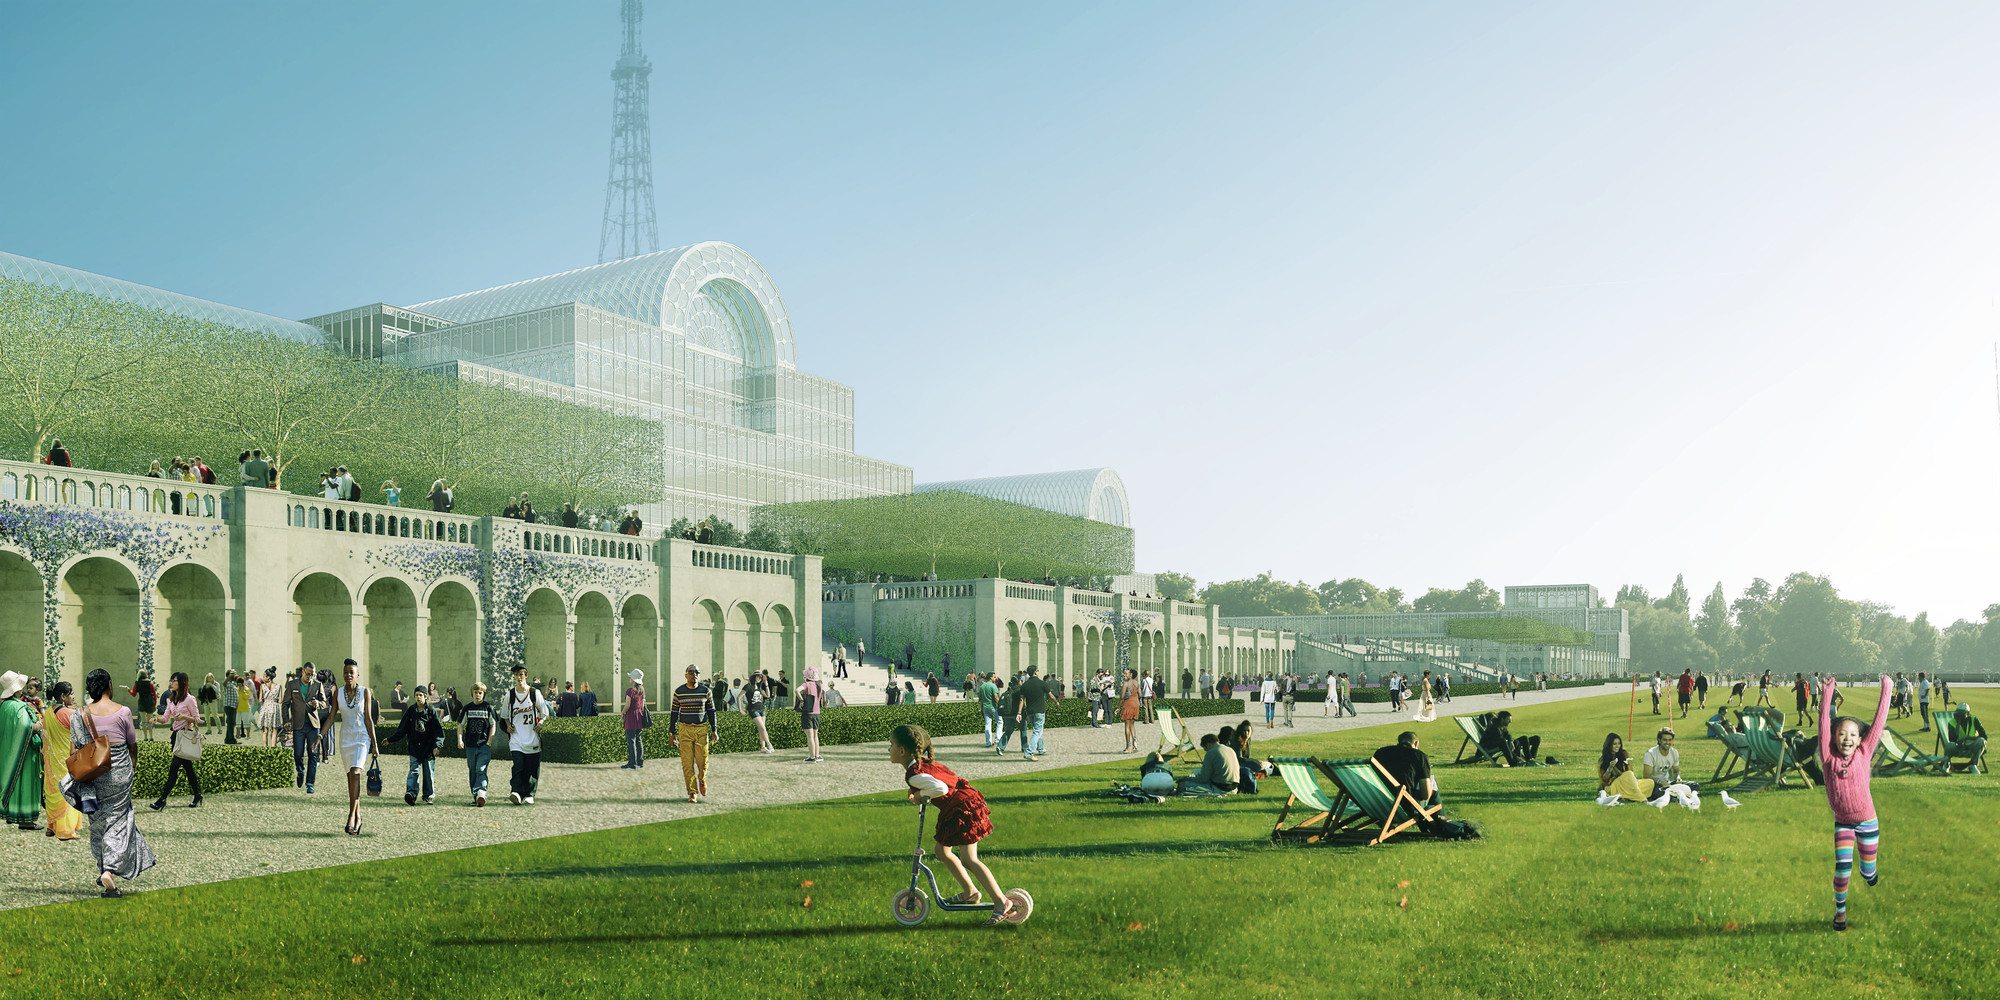 Plans Unveiled For Crystal Palace Rebuild, Terrace view . Image Courtesy of ZhongRong Group